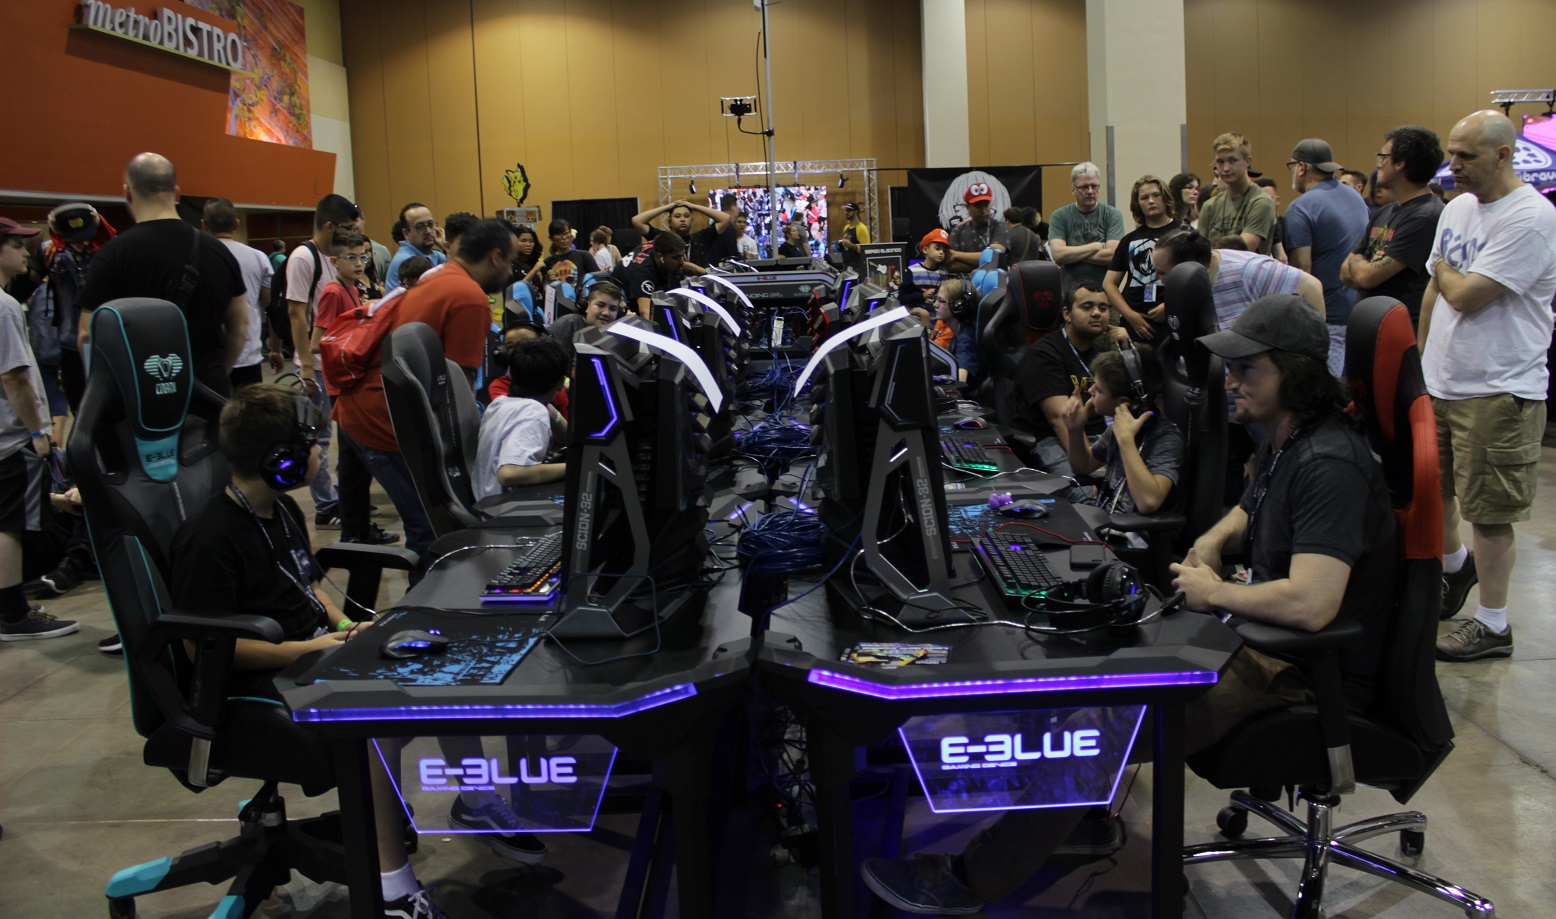 Up for a match? Attendees played Fortnite on special setups. Photo by Justin Franco.